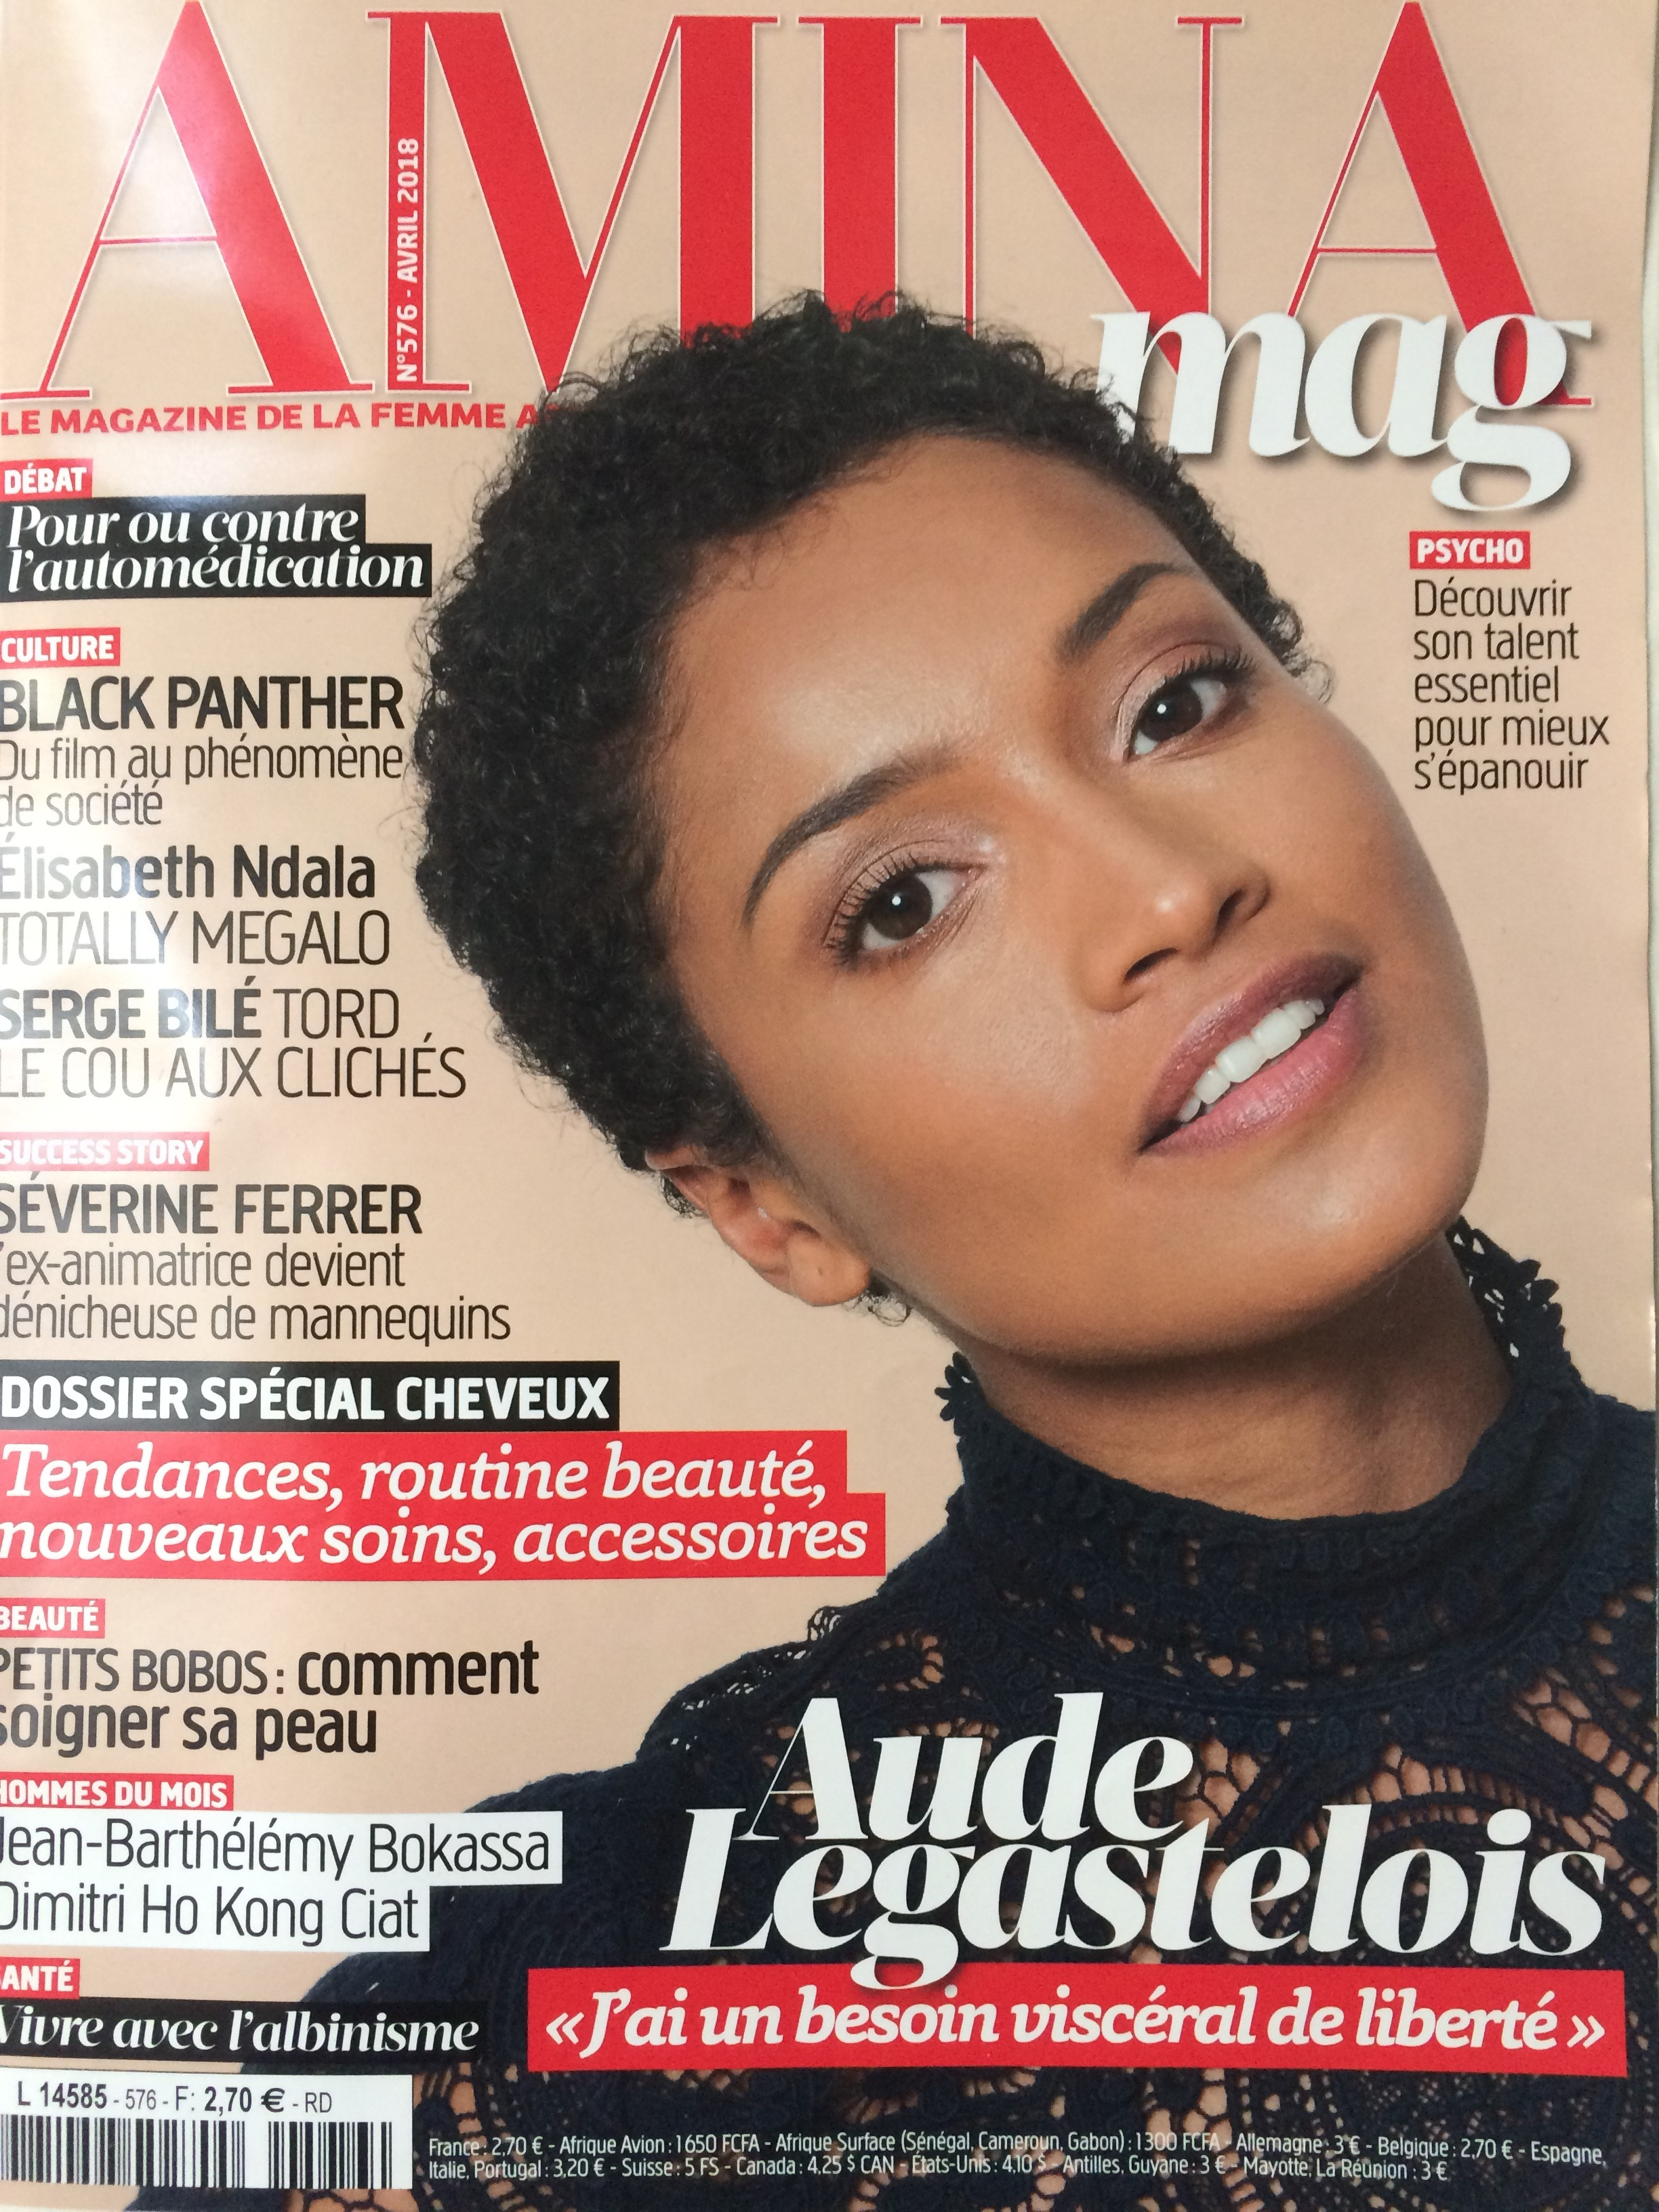 Couverture Amina Mag n°576 Avril 2018